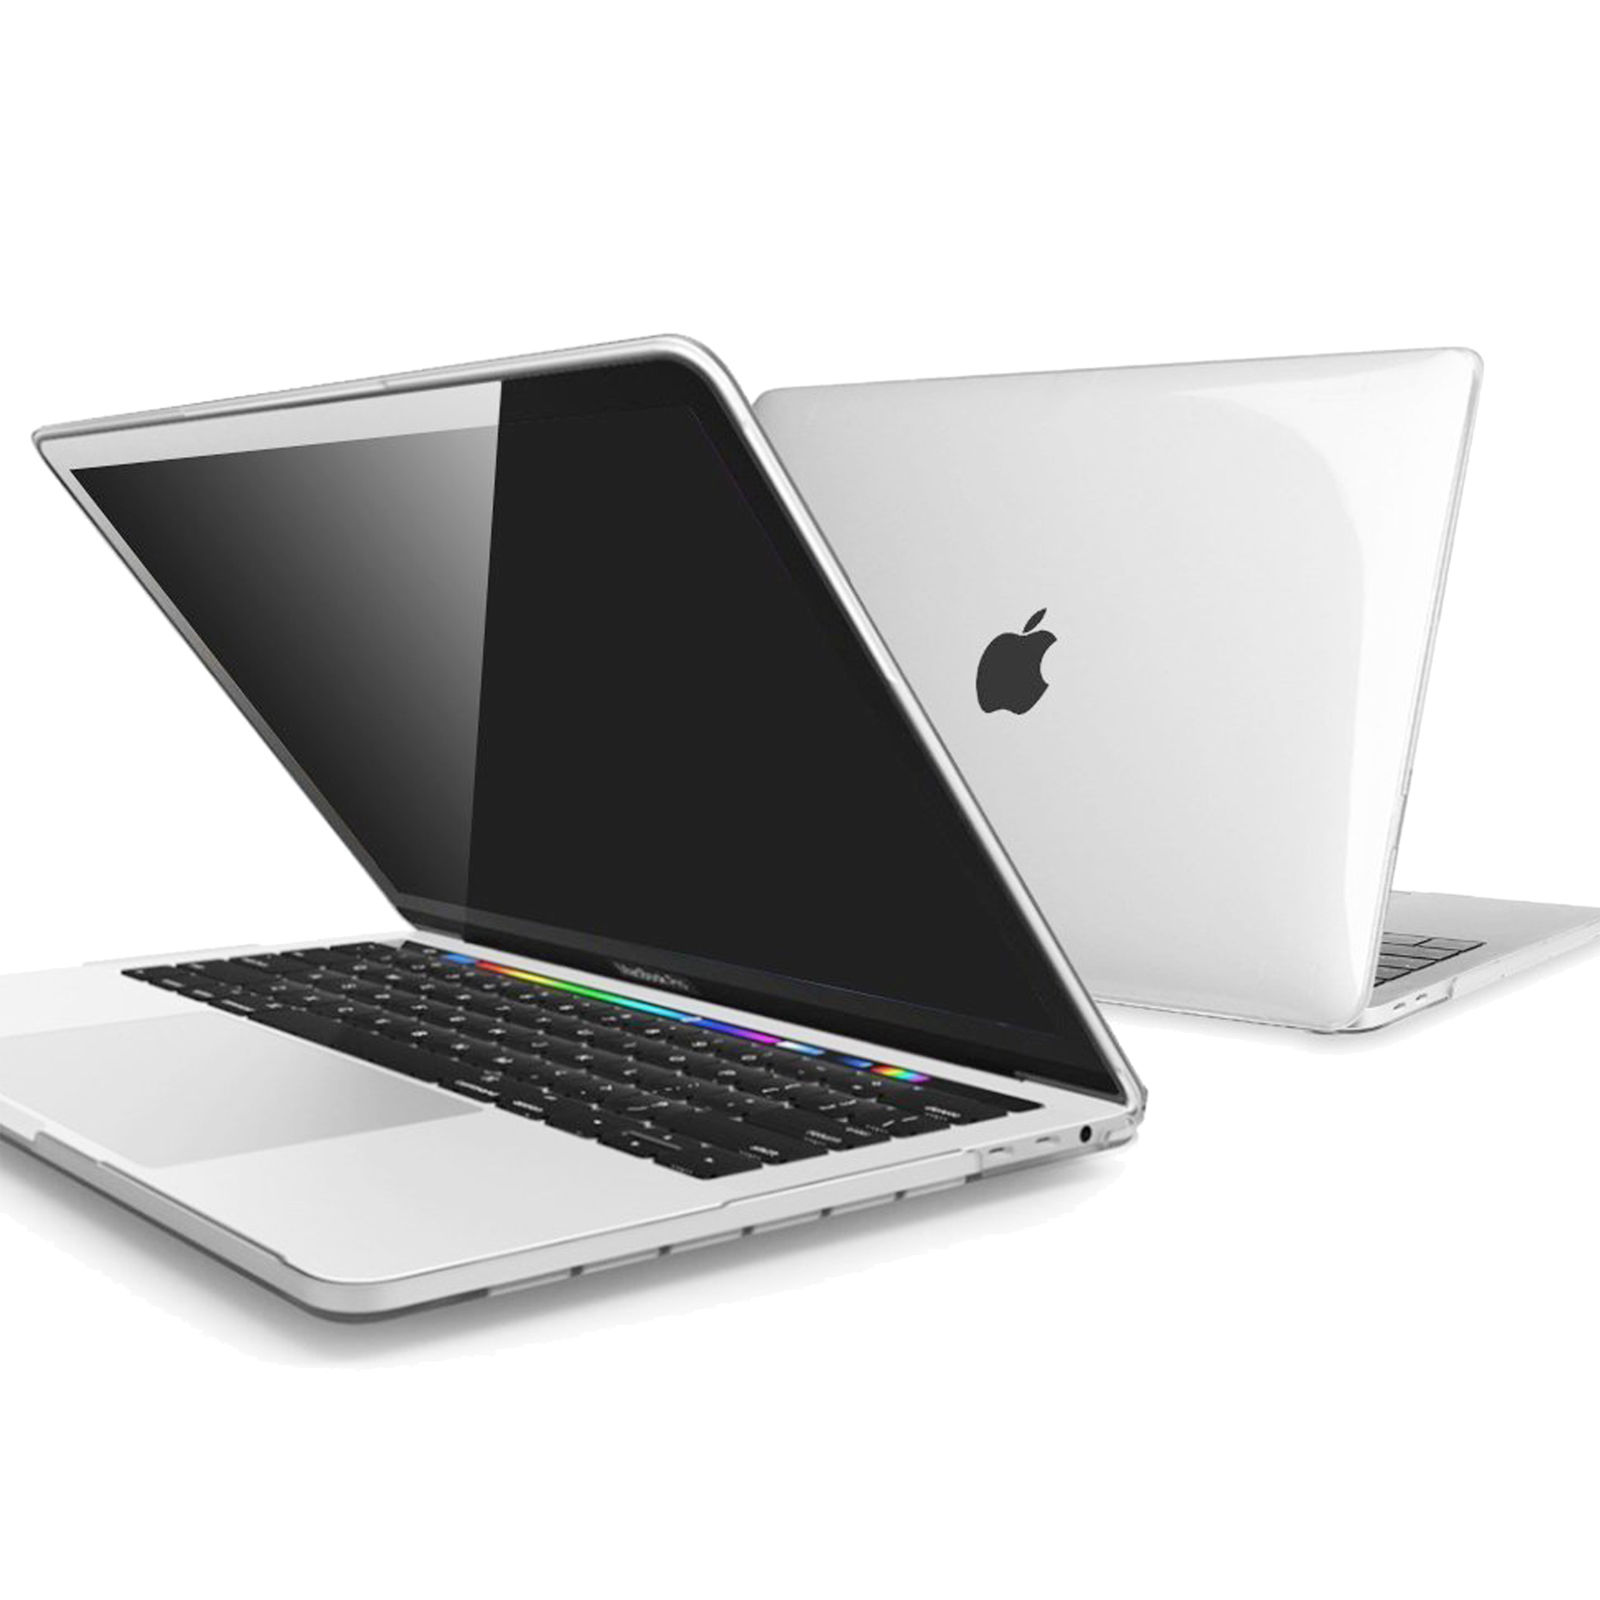 """LIVEDITOR 4 IN 1 See-Through Crystal Case+Soft Bag F Macbook Pro 13""""A1706(With Touch Bar) - image 5 de 7"""